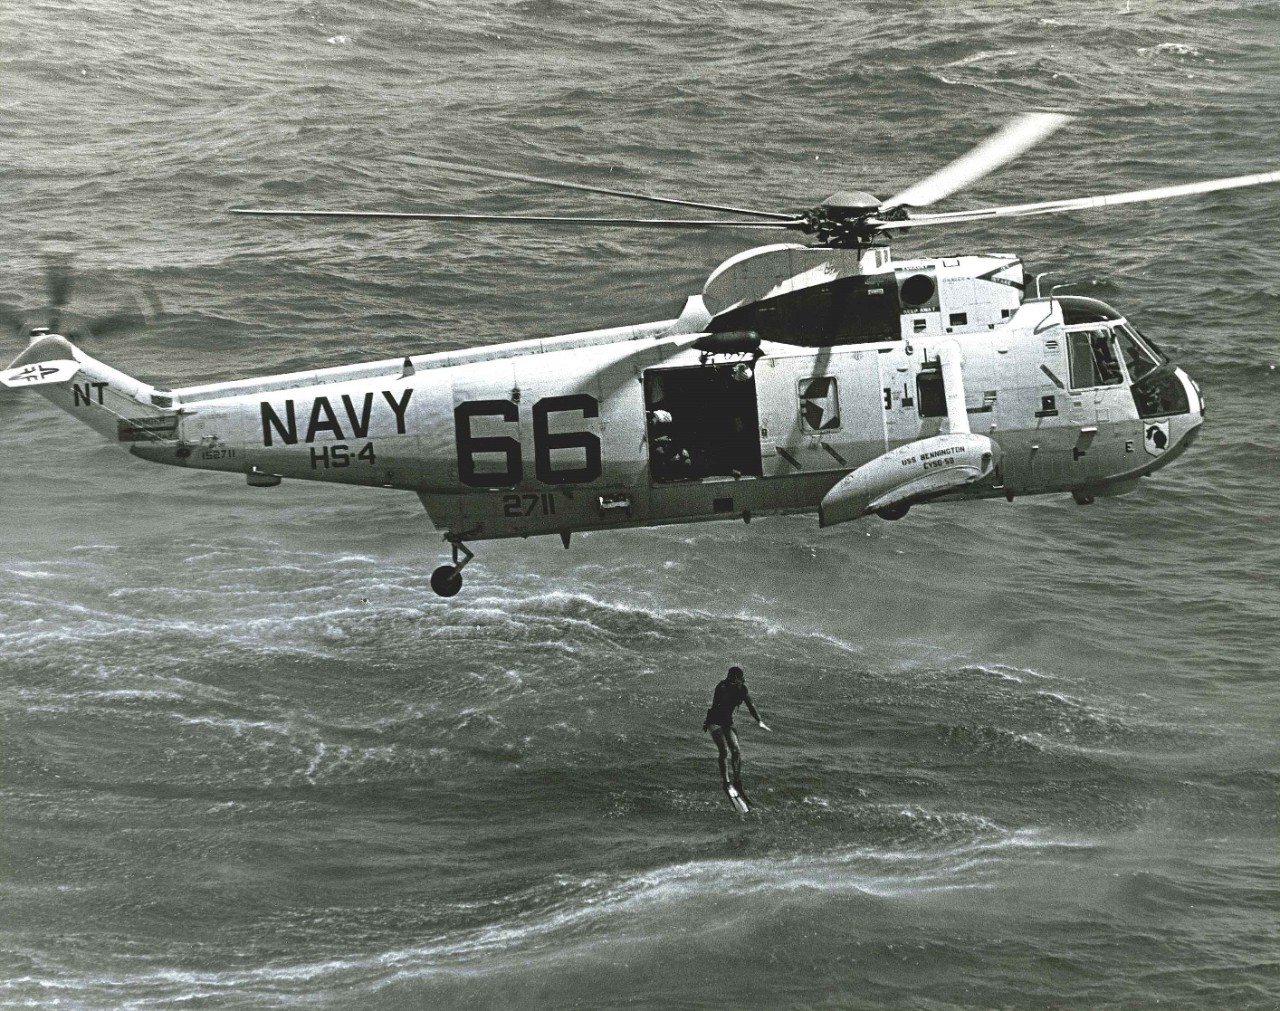 <p>A helicopter drops a UDT swimmer into the water during Apollo 11 recovery practice&nbsp;exercises.&nbsp;</p>